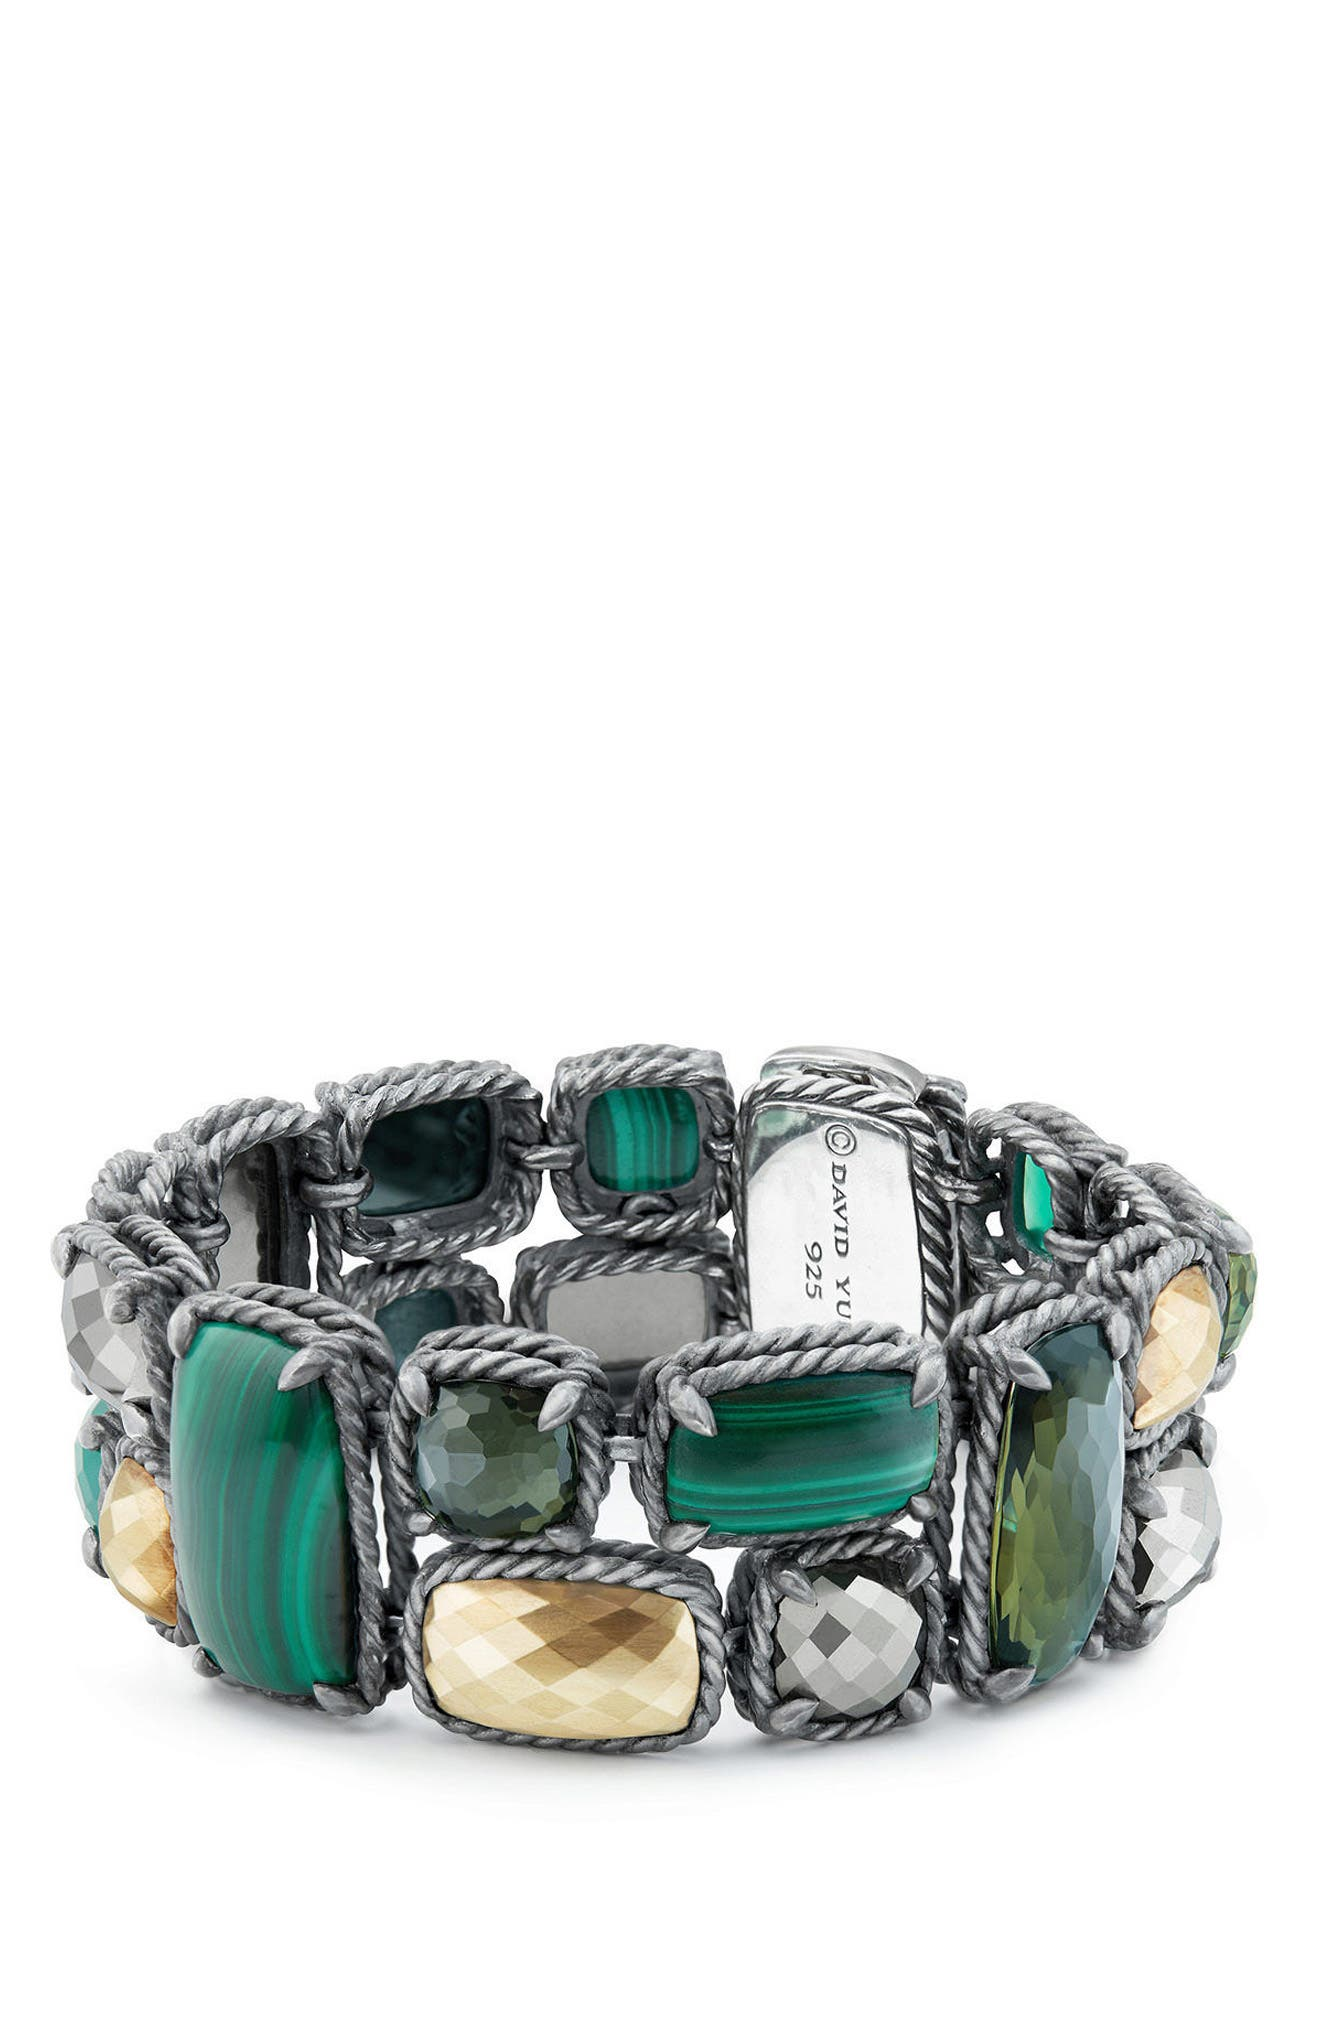 David Yurman Chatelaine Mosaic Bracelet with 18K Gold